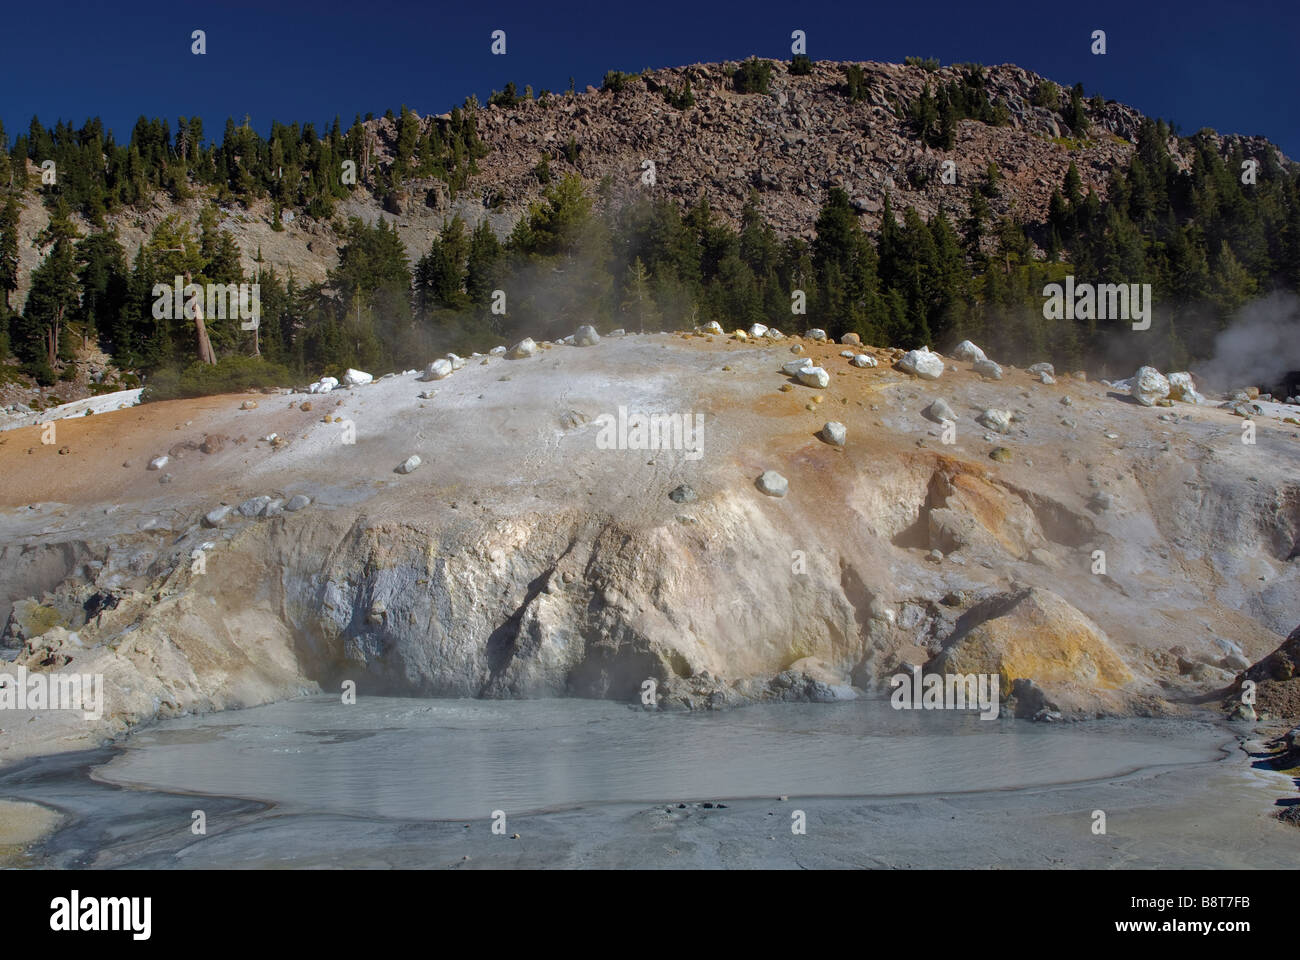 big boiler pool at bumpass hell area in lassen volcanic national park stock photo royalty free. Black Bedroom Furniture Sets. Home Design Ideas